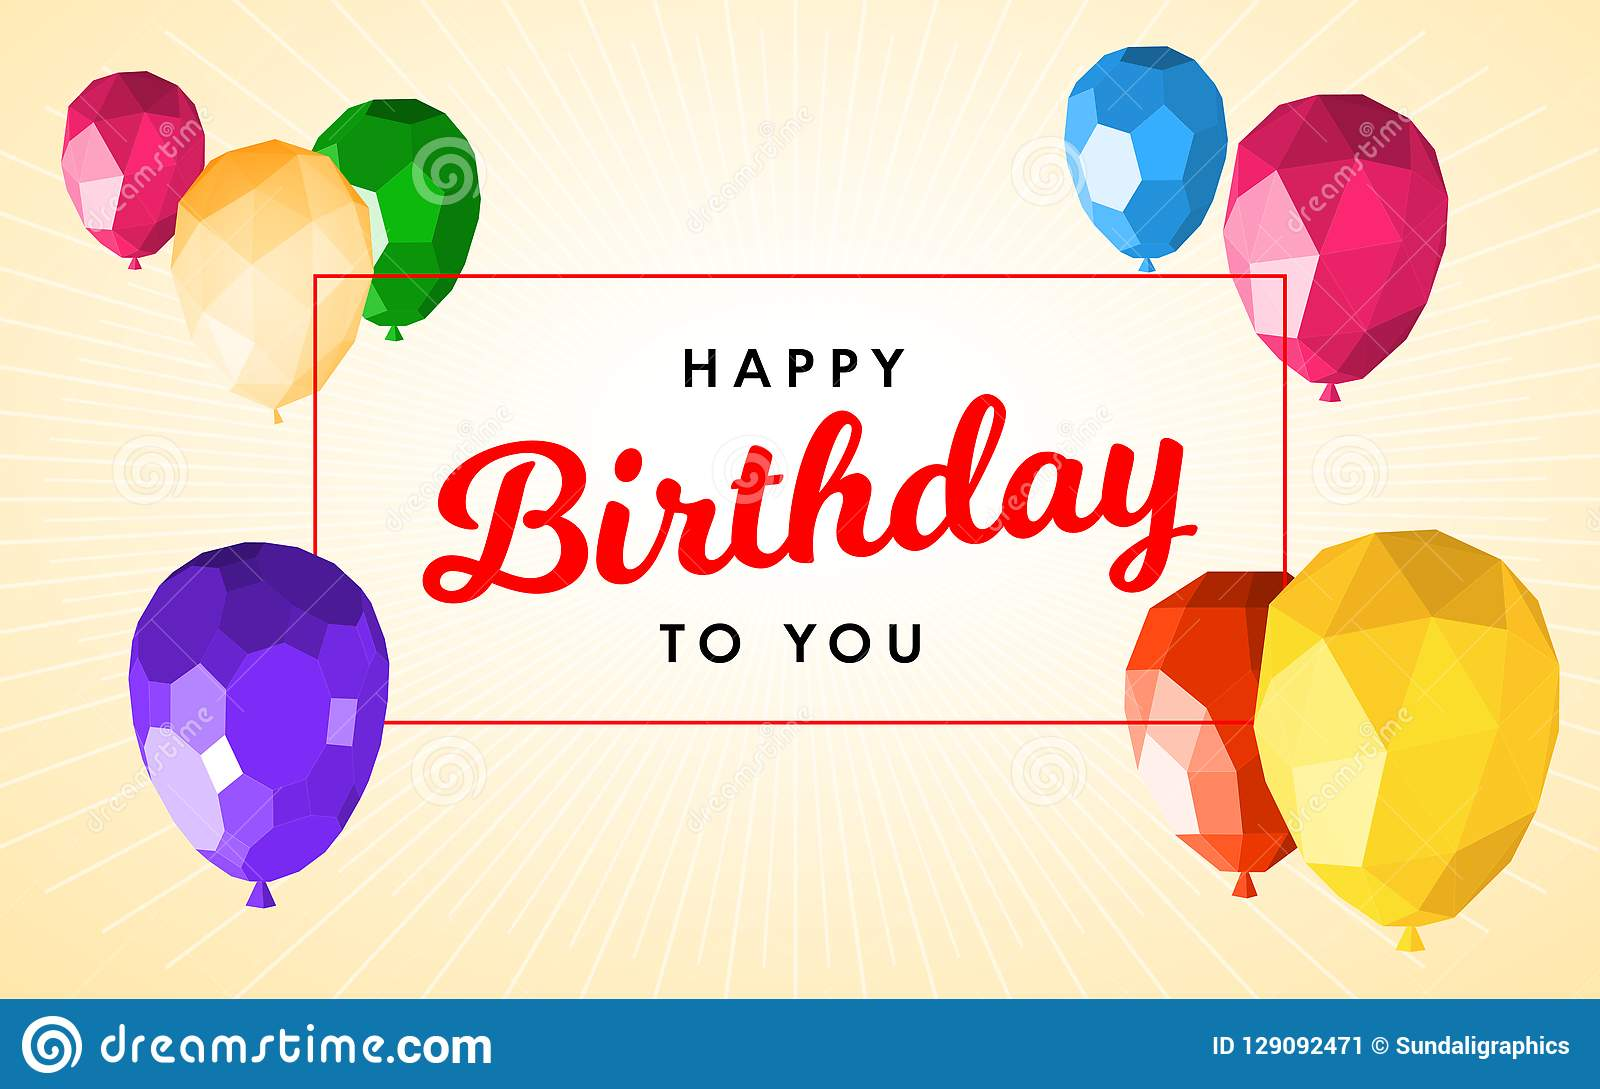 Happy Birthday Greeting Card Template Stock Vector Illustration Of Helium Greeting 129092471